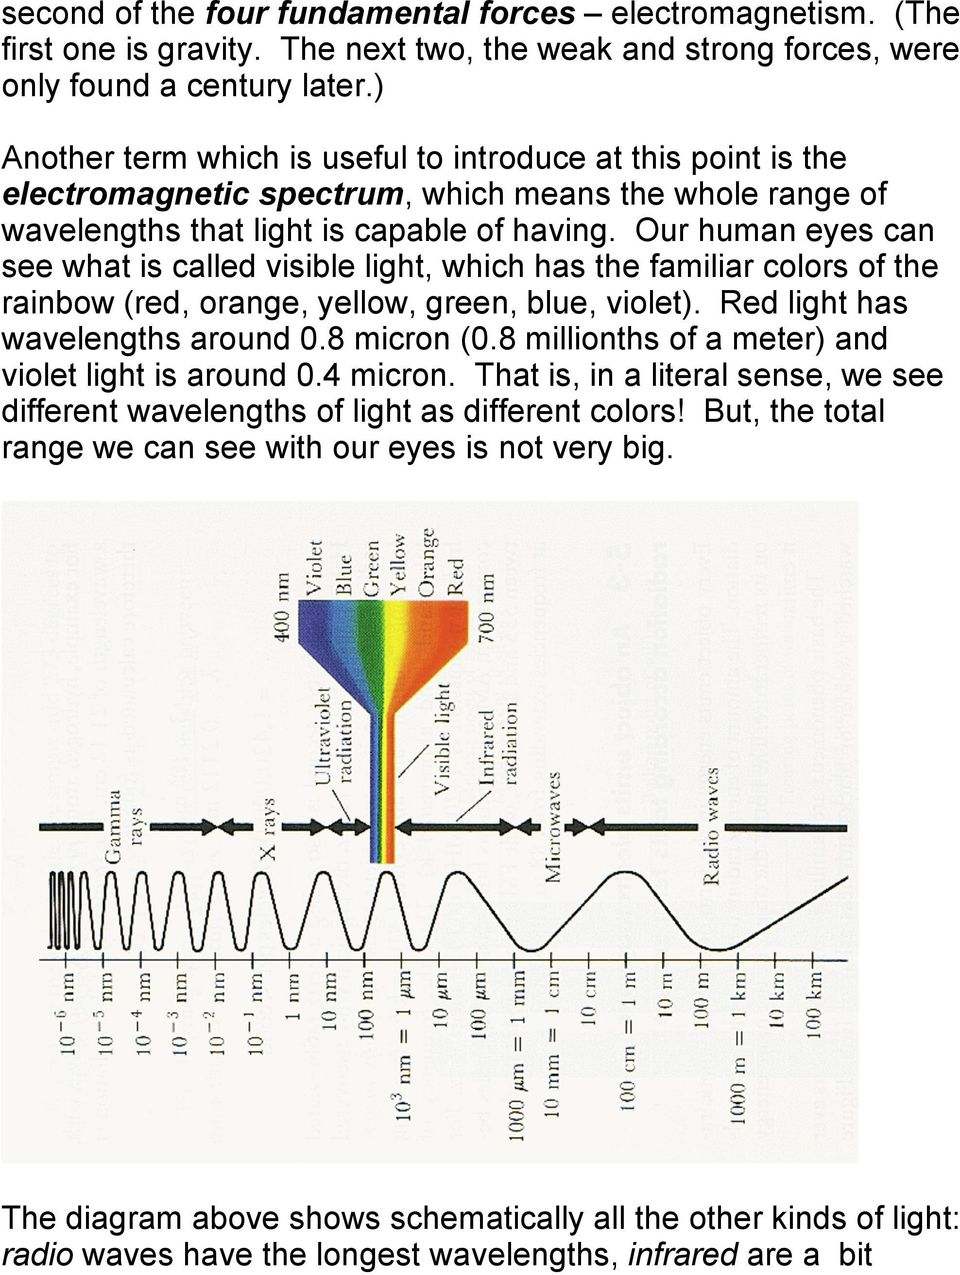 Our human eyes can see what is called visible light, which has the familiar colors of the rainbow (red, orange, yellow, green, blue, violet). Red light has wavelengths around 0.8 micron (0.